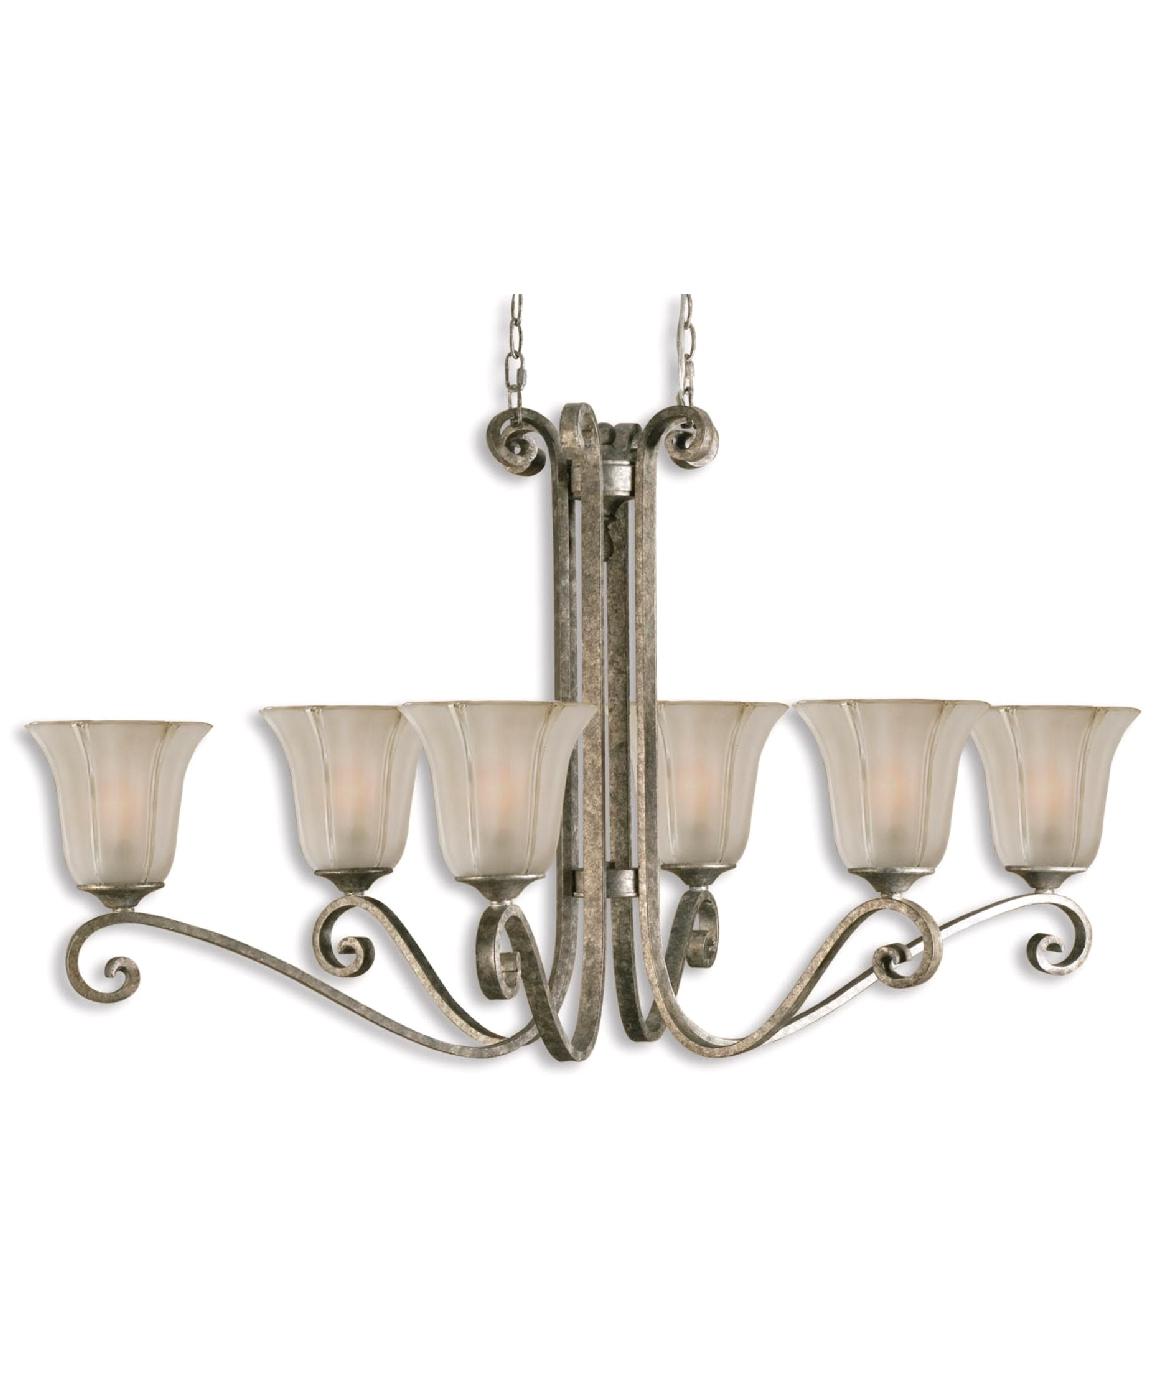 Lyon contemporary 6 light silver chandelier 21147 for Novea lyon 6